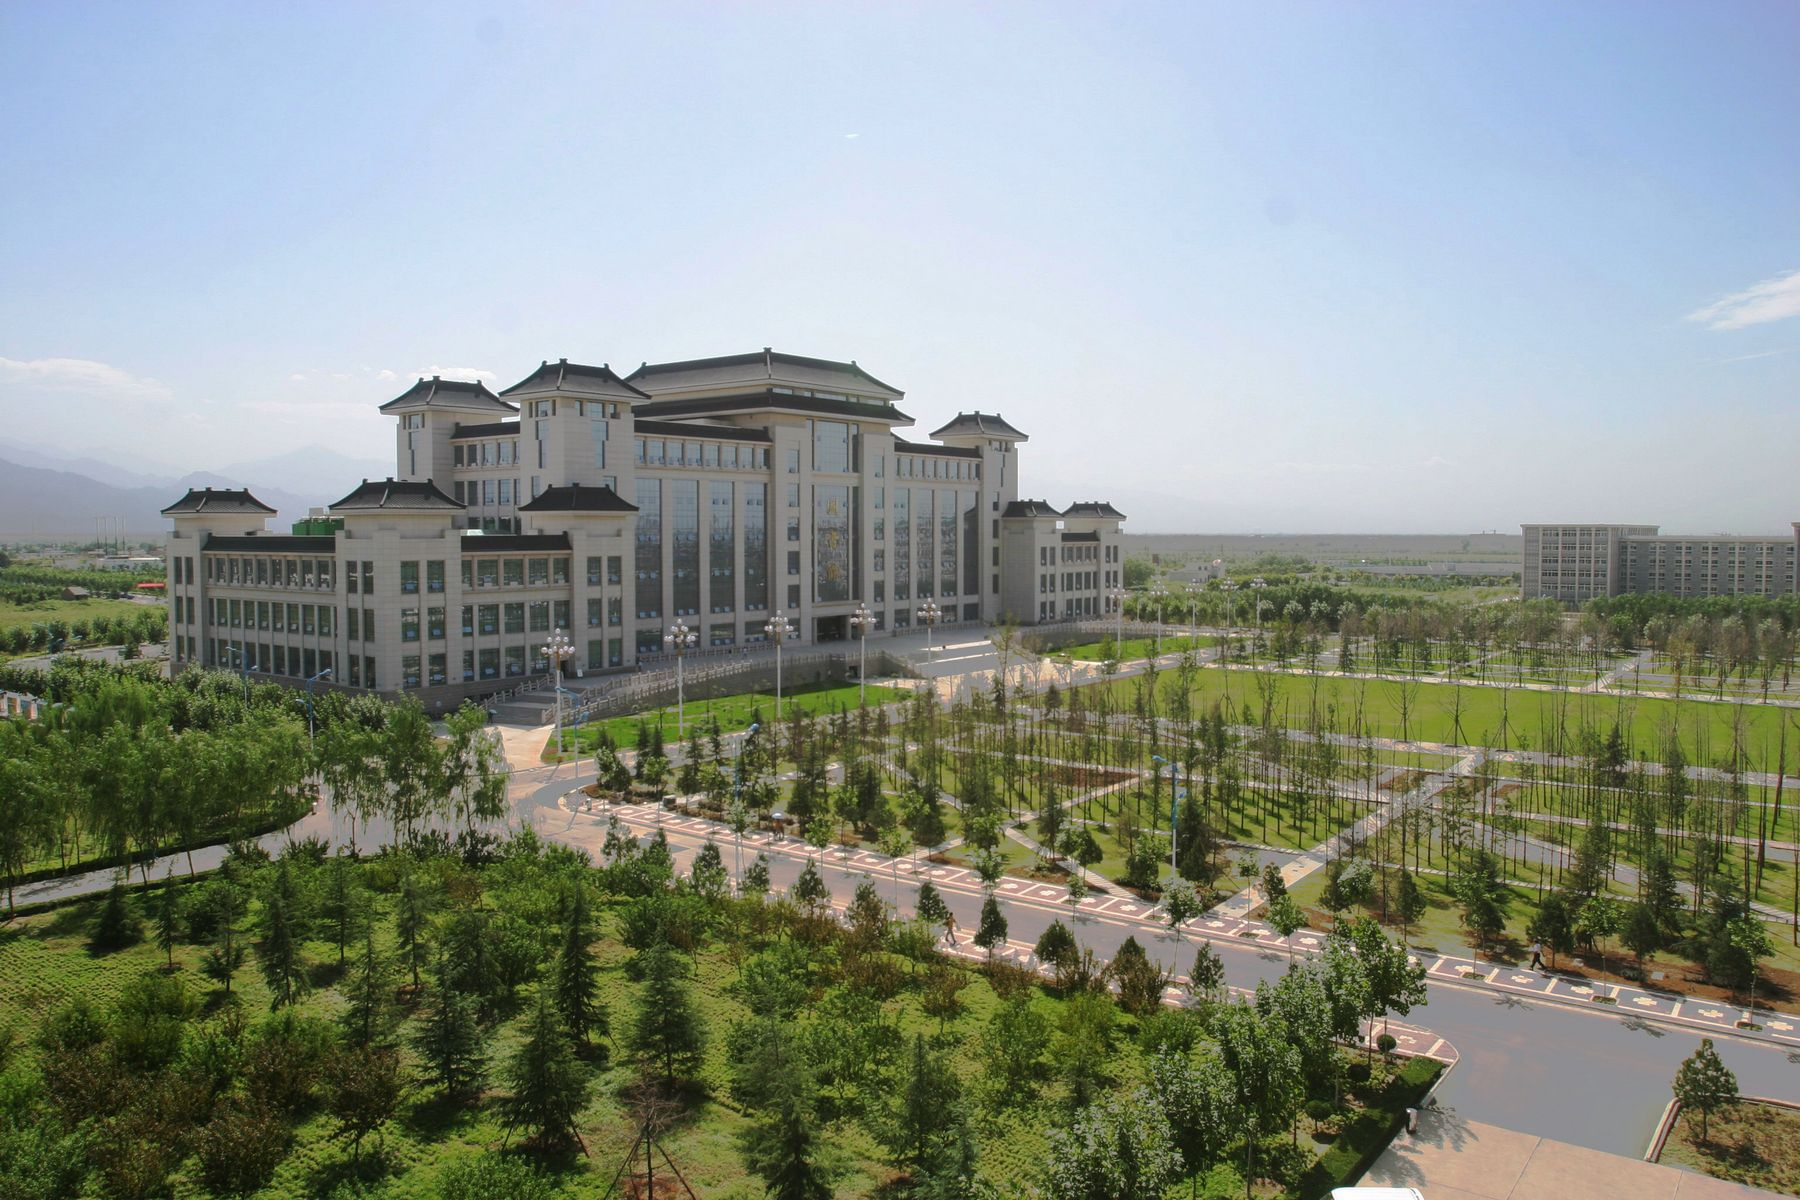 Shaanxi Normal University